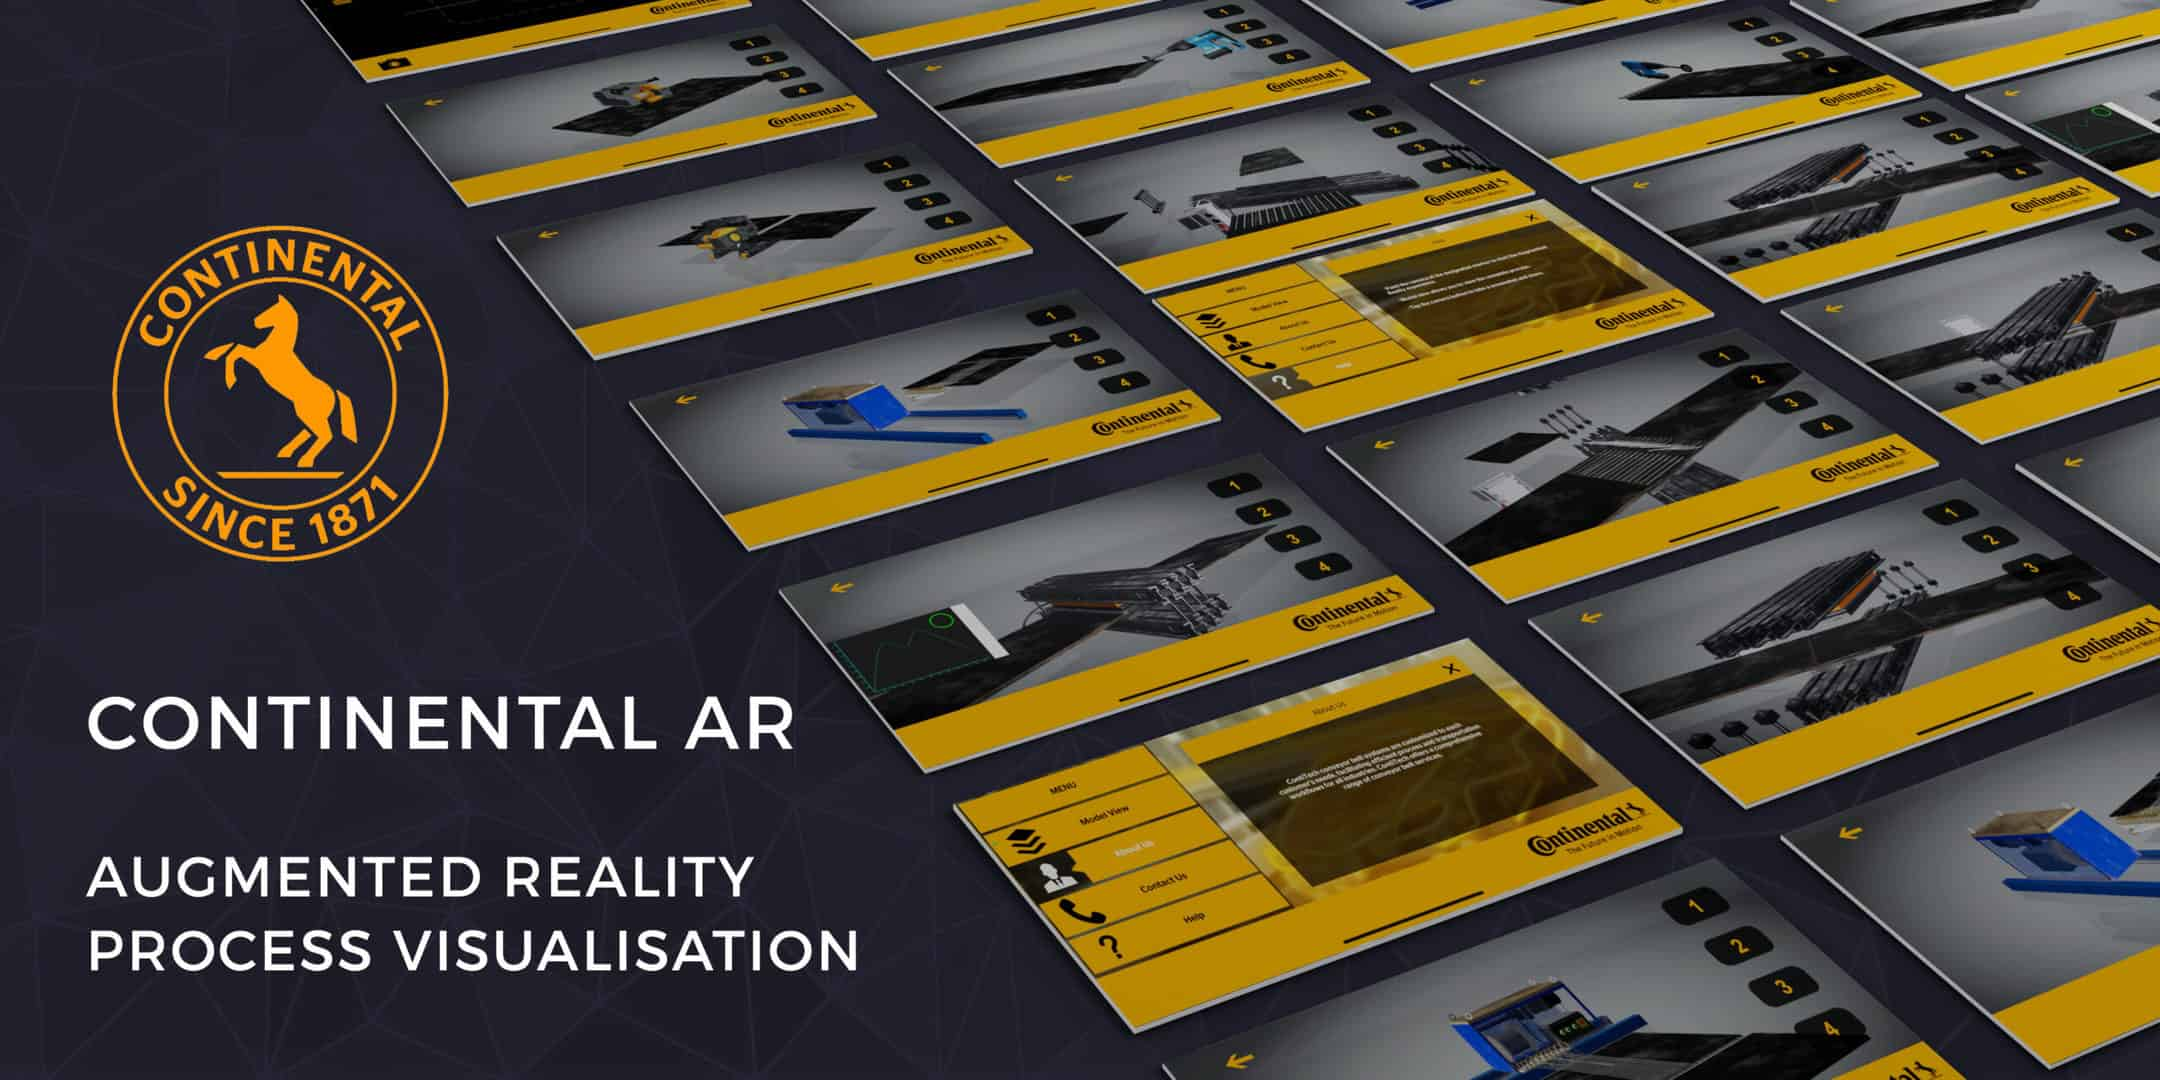 Read more about the article CONTINENTAL AR<br>Continental used an augmented reality application to allow clients to visualise the machines and the process responsible for its highly advanced belt splicing process.